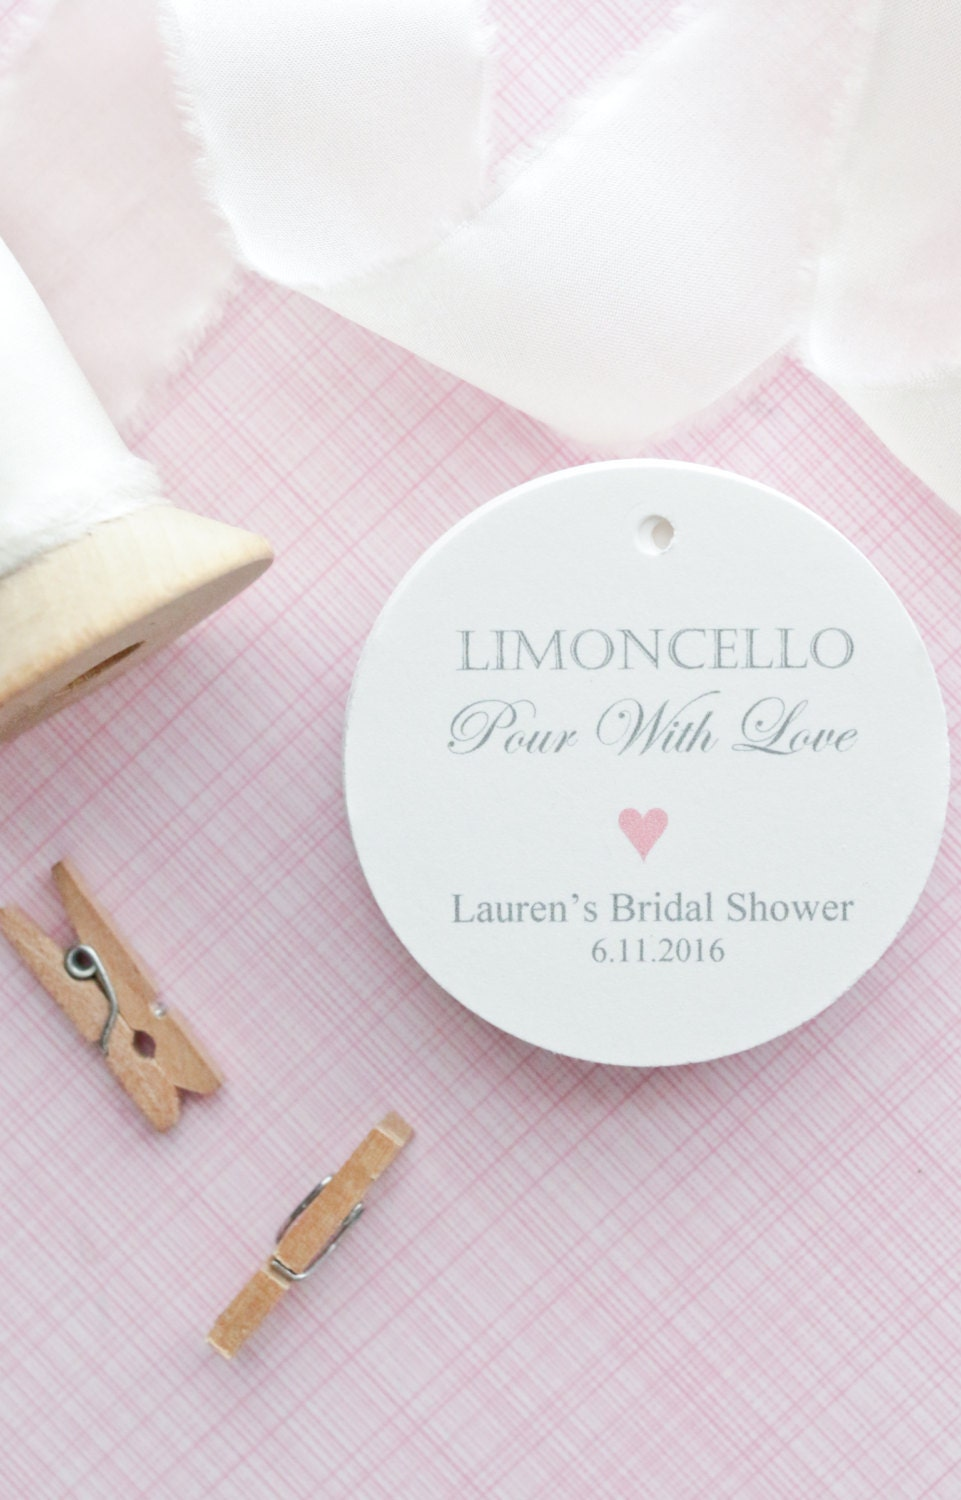 Gift Tags-Wedding Favors-Bridal Shower favors-Limoncello